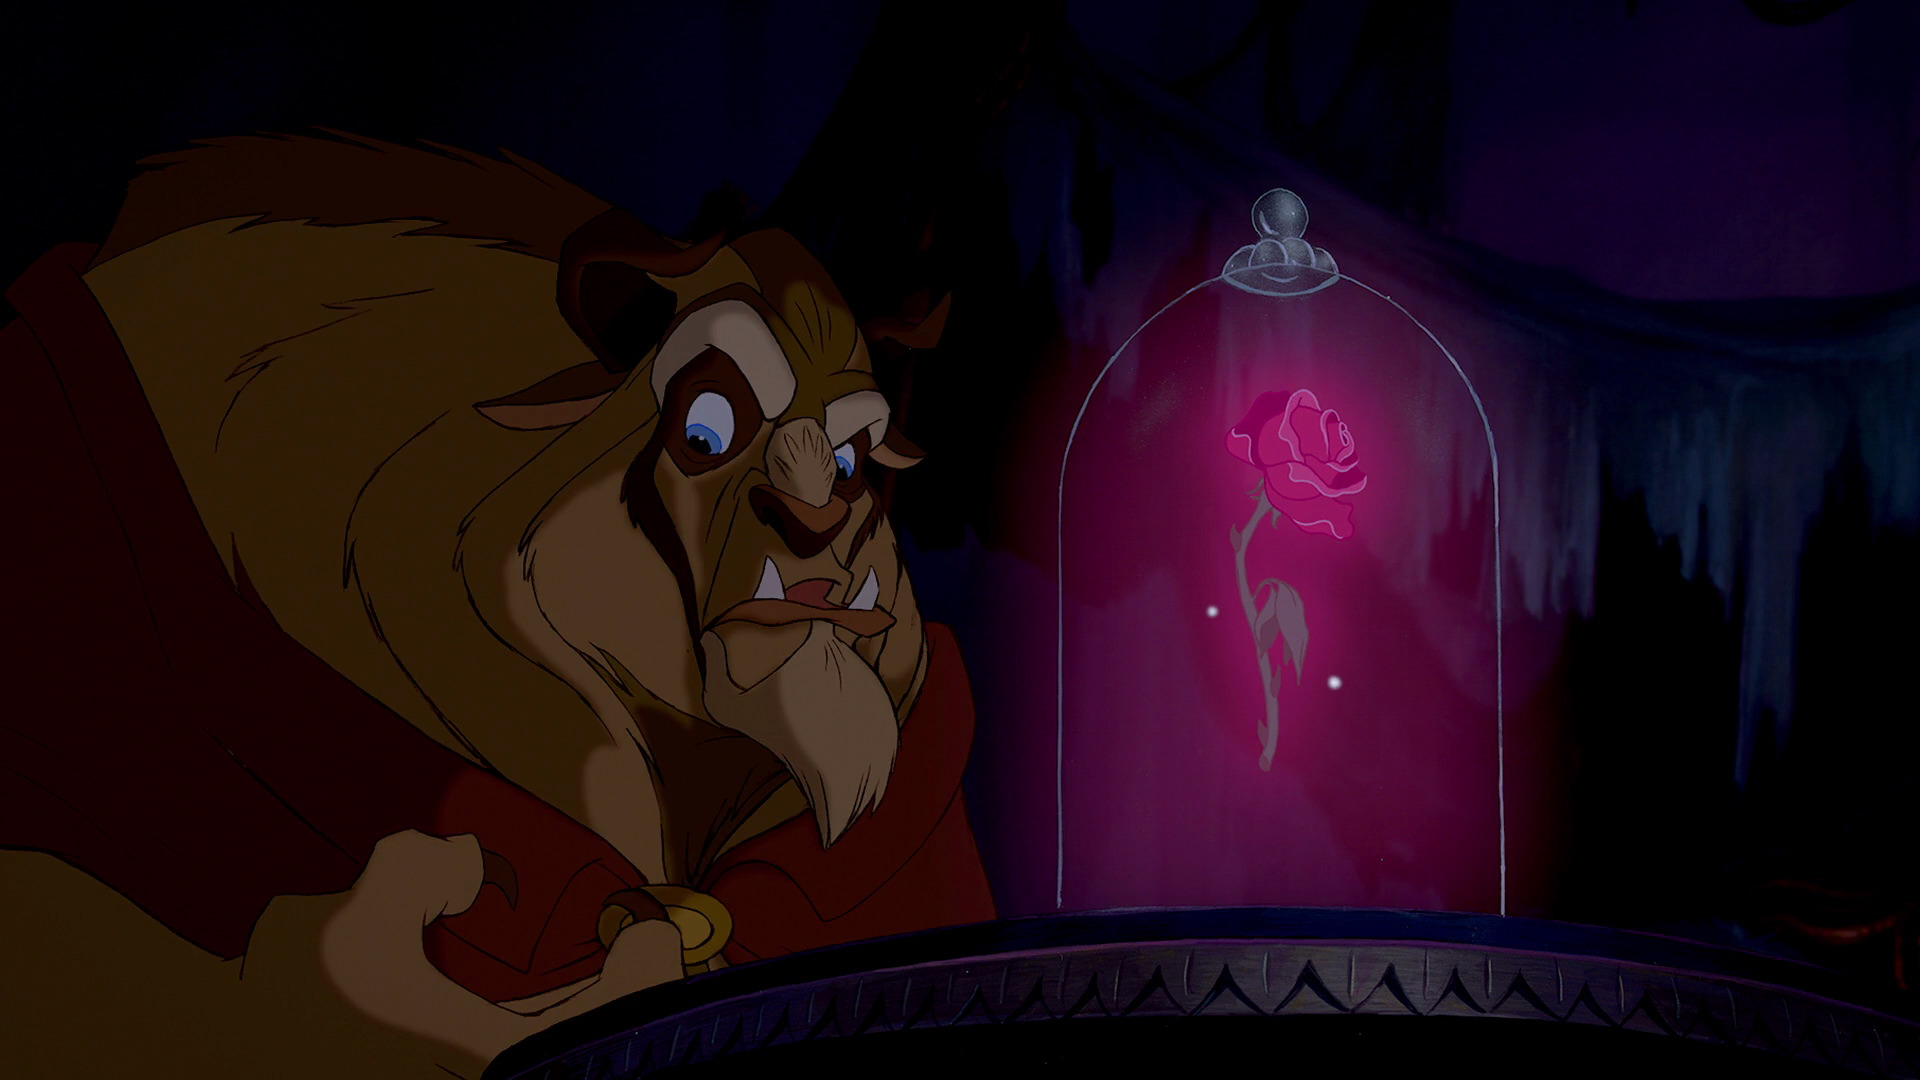 Beauty-and-the-beast-disneyscreencaps.com-4014.jpg